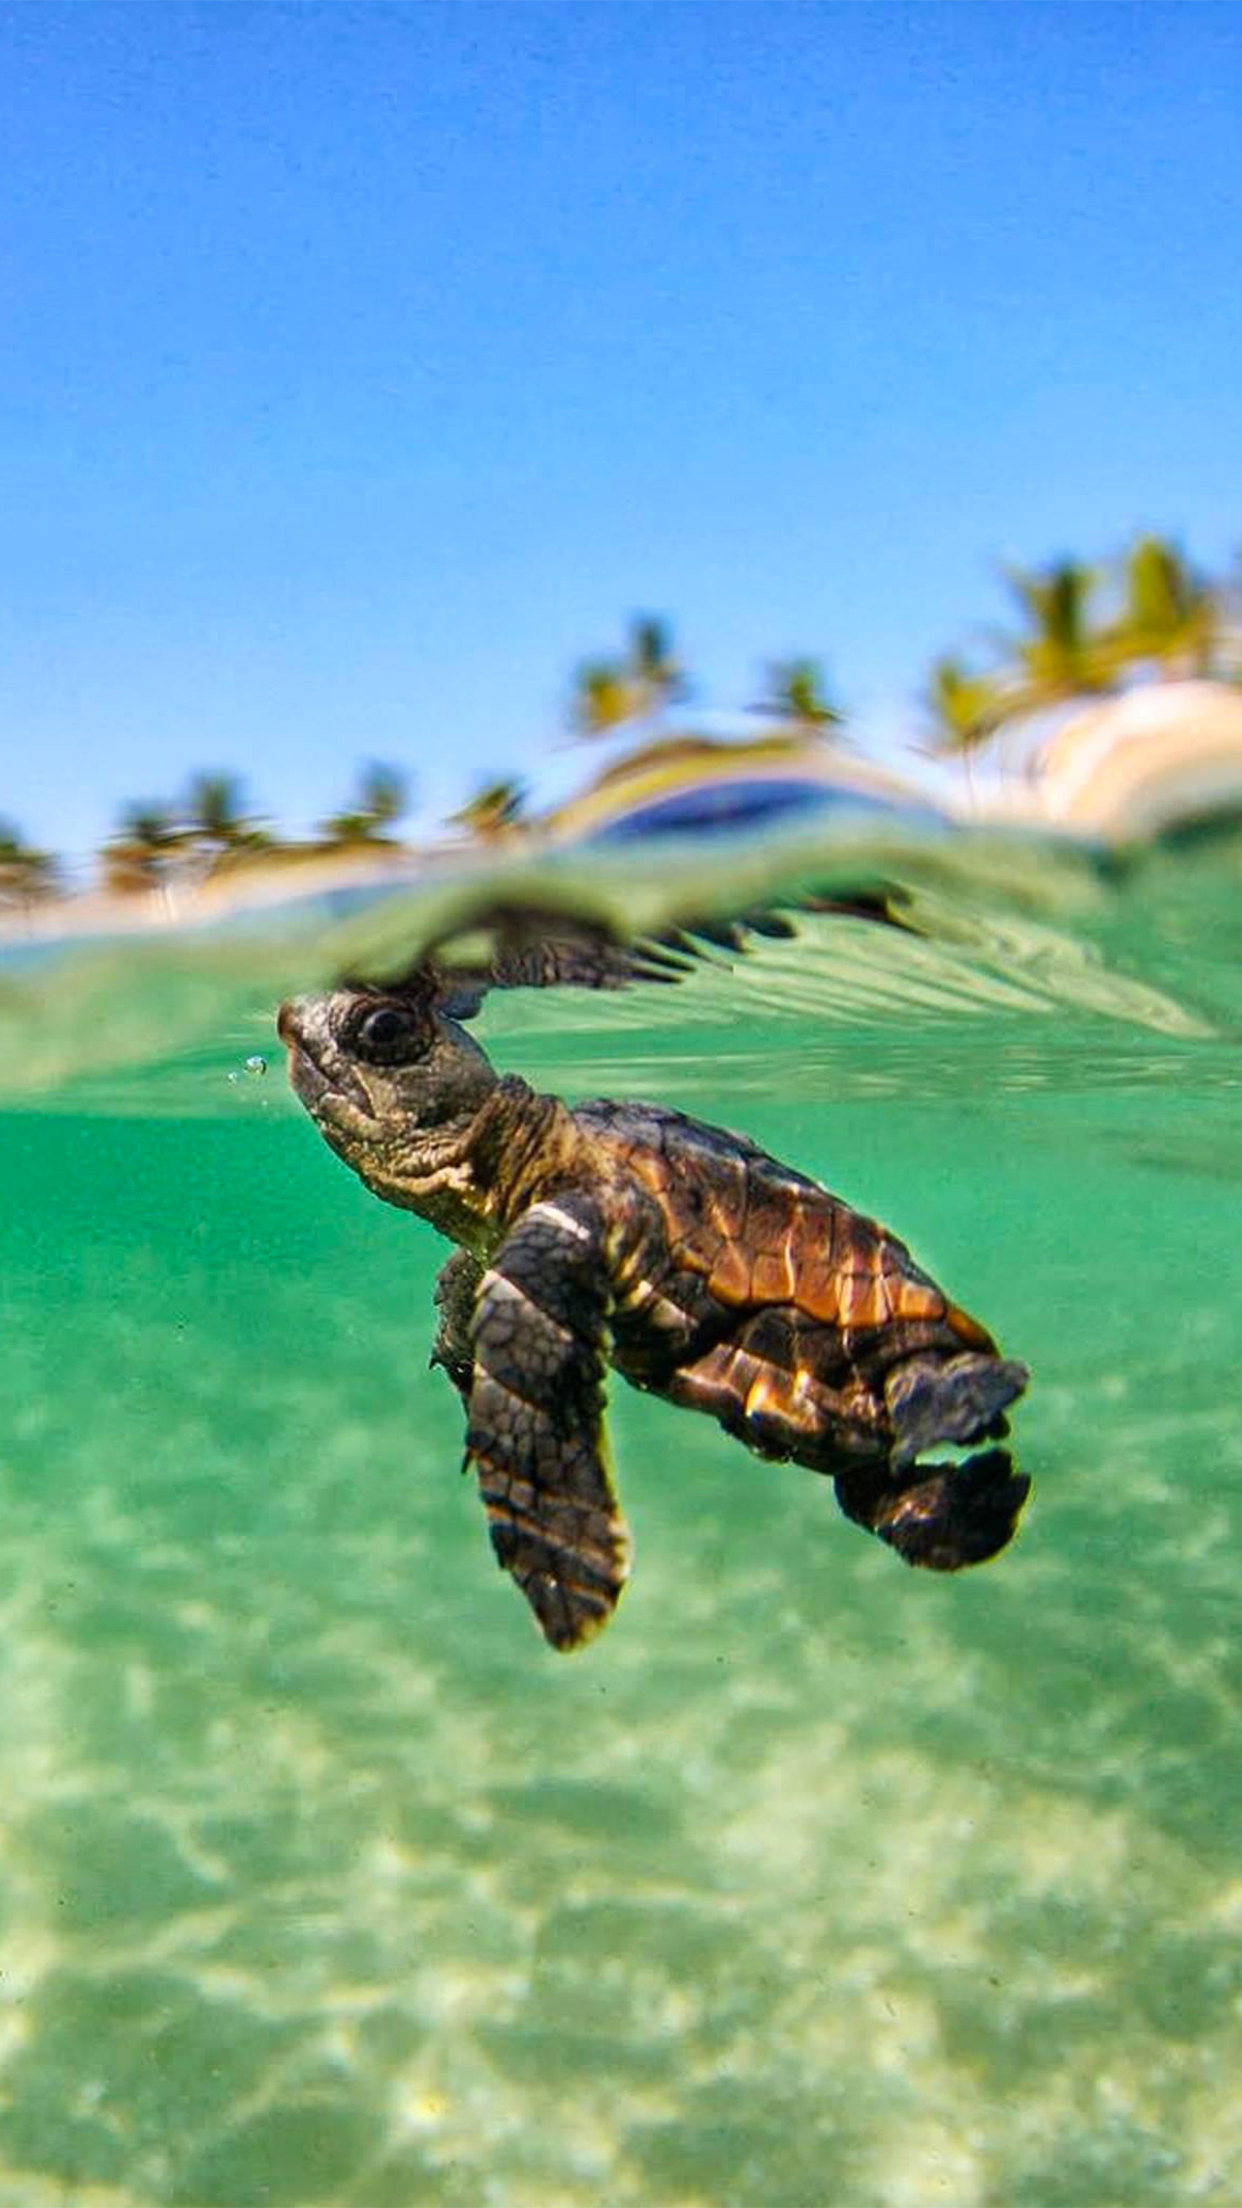 Turtle Lagon Wallpaper For Iphone X 8 7 6 Free